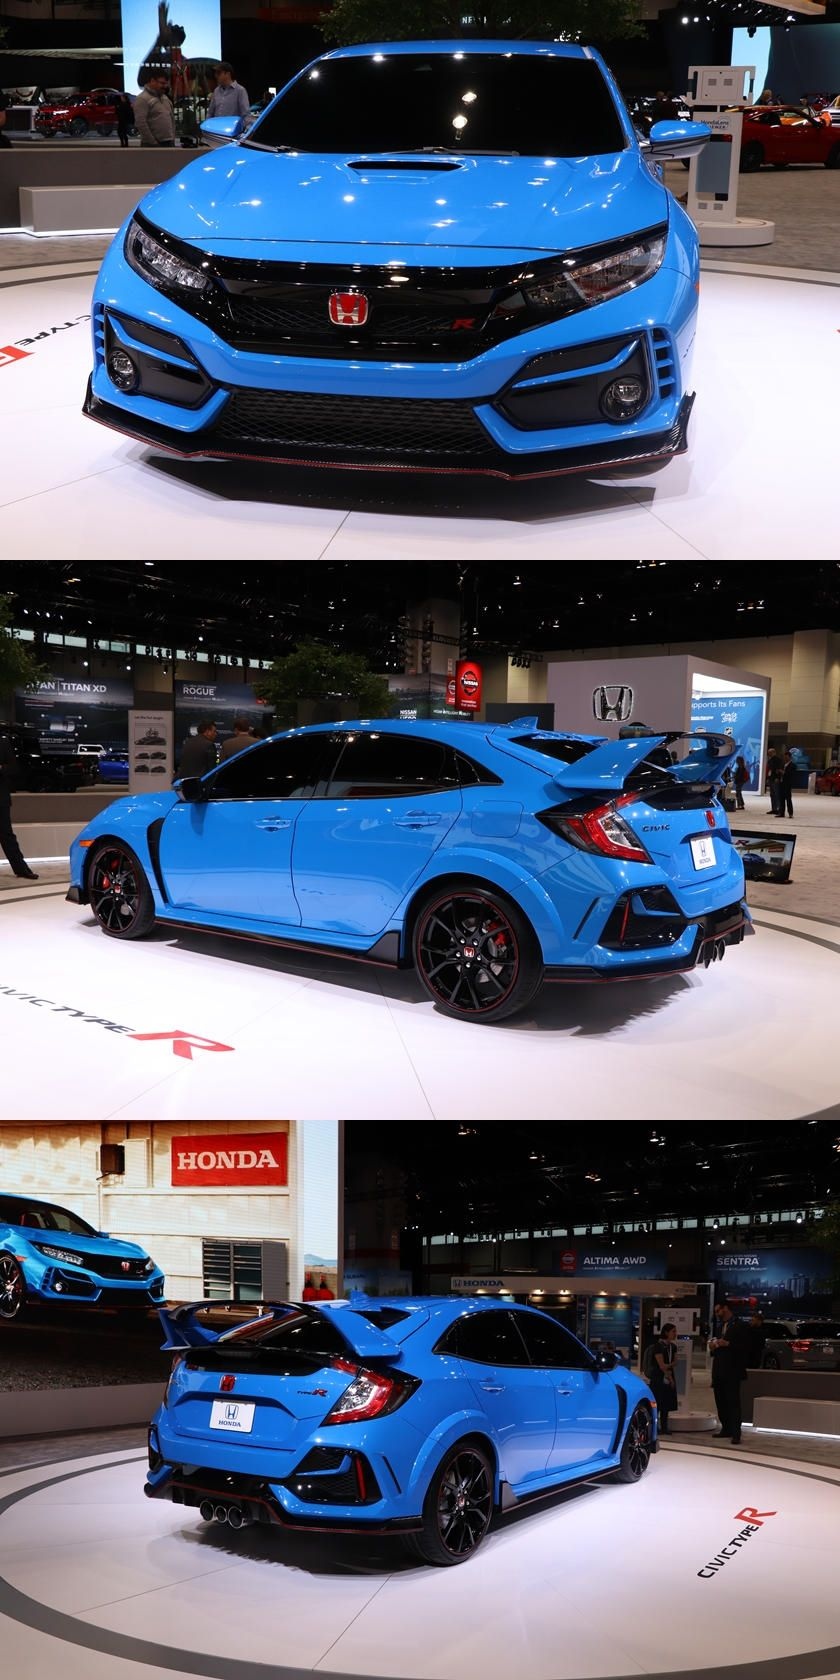 2020 Honda Civic Type R Arrives In Chicago With Outrageous New Color. Honda's hot hatch gets a wealth of performance and styling updates for 2020.